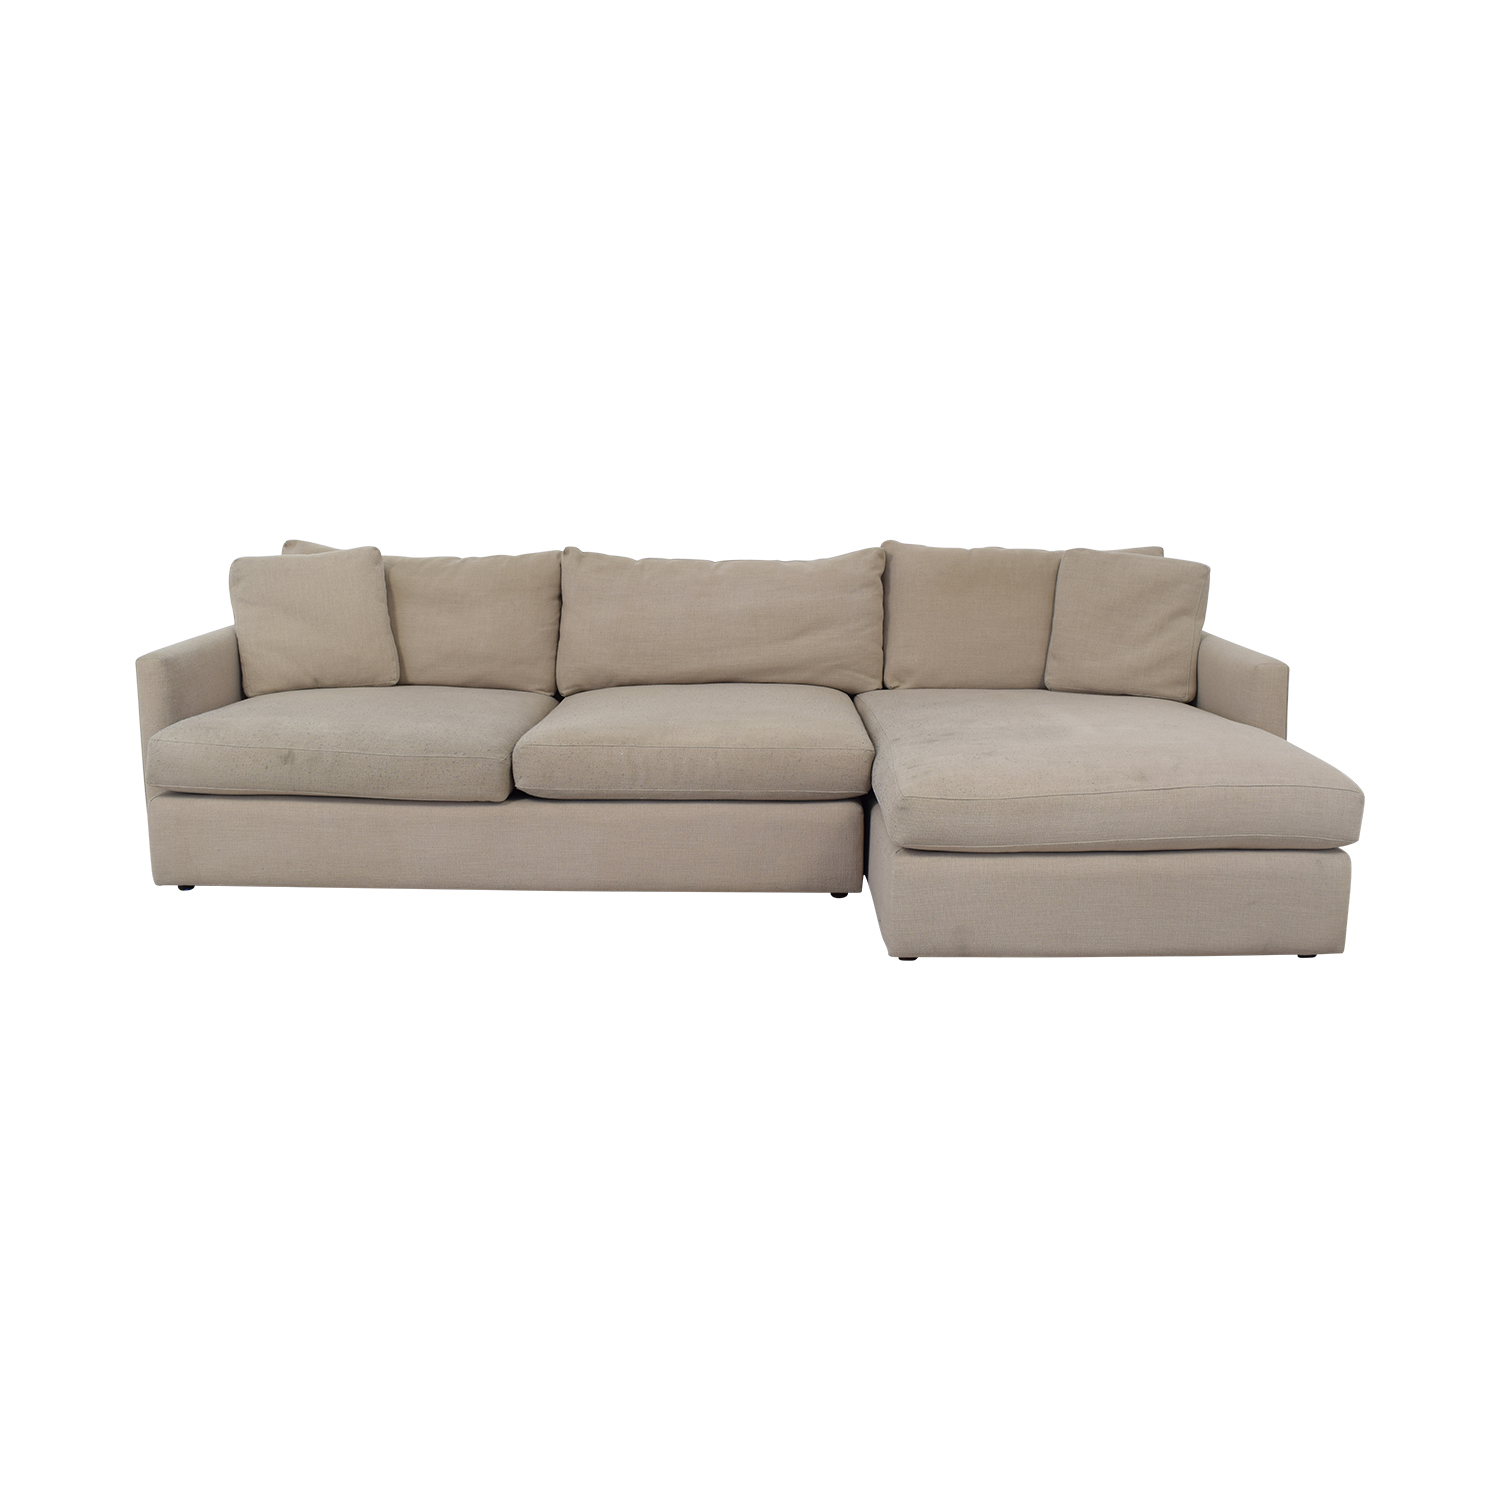 Excellent 84 Off Crate Barrel Crate Barrel Sectional Sofa Sofas Inzonedesignstudio Interior Chair Design Inzonedesignstudiocom